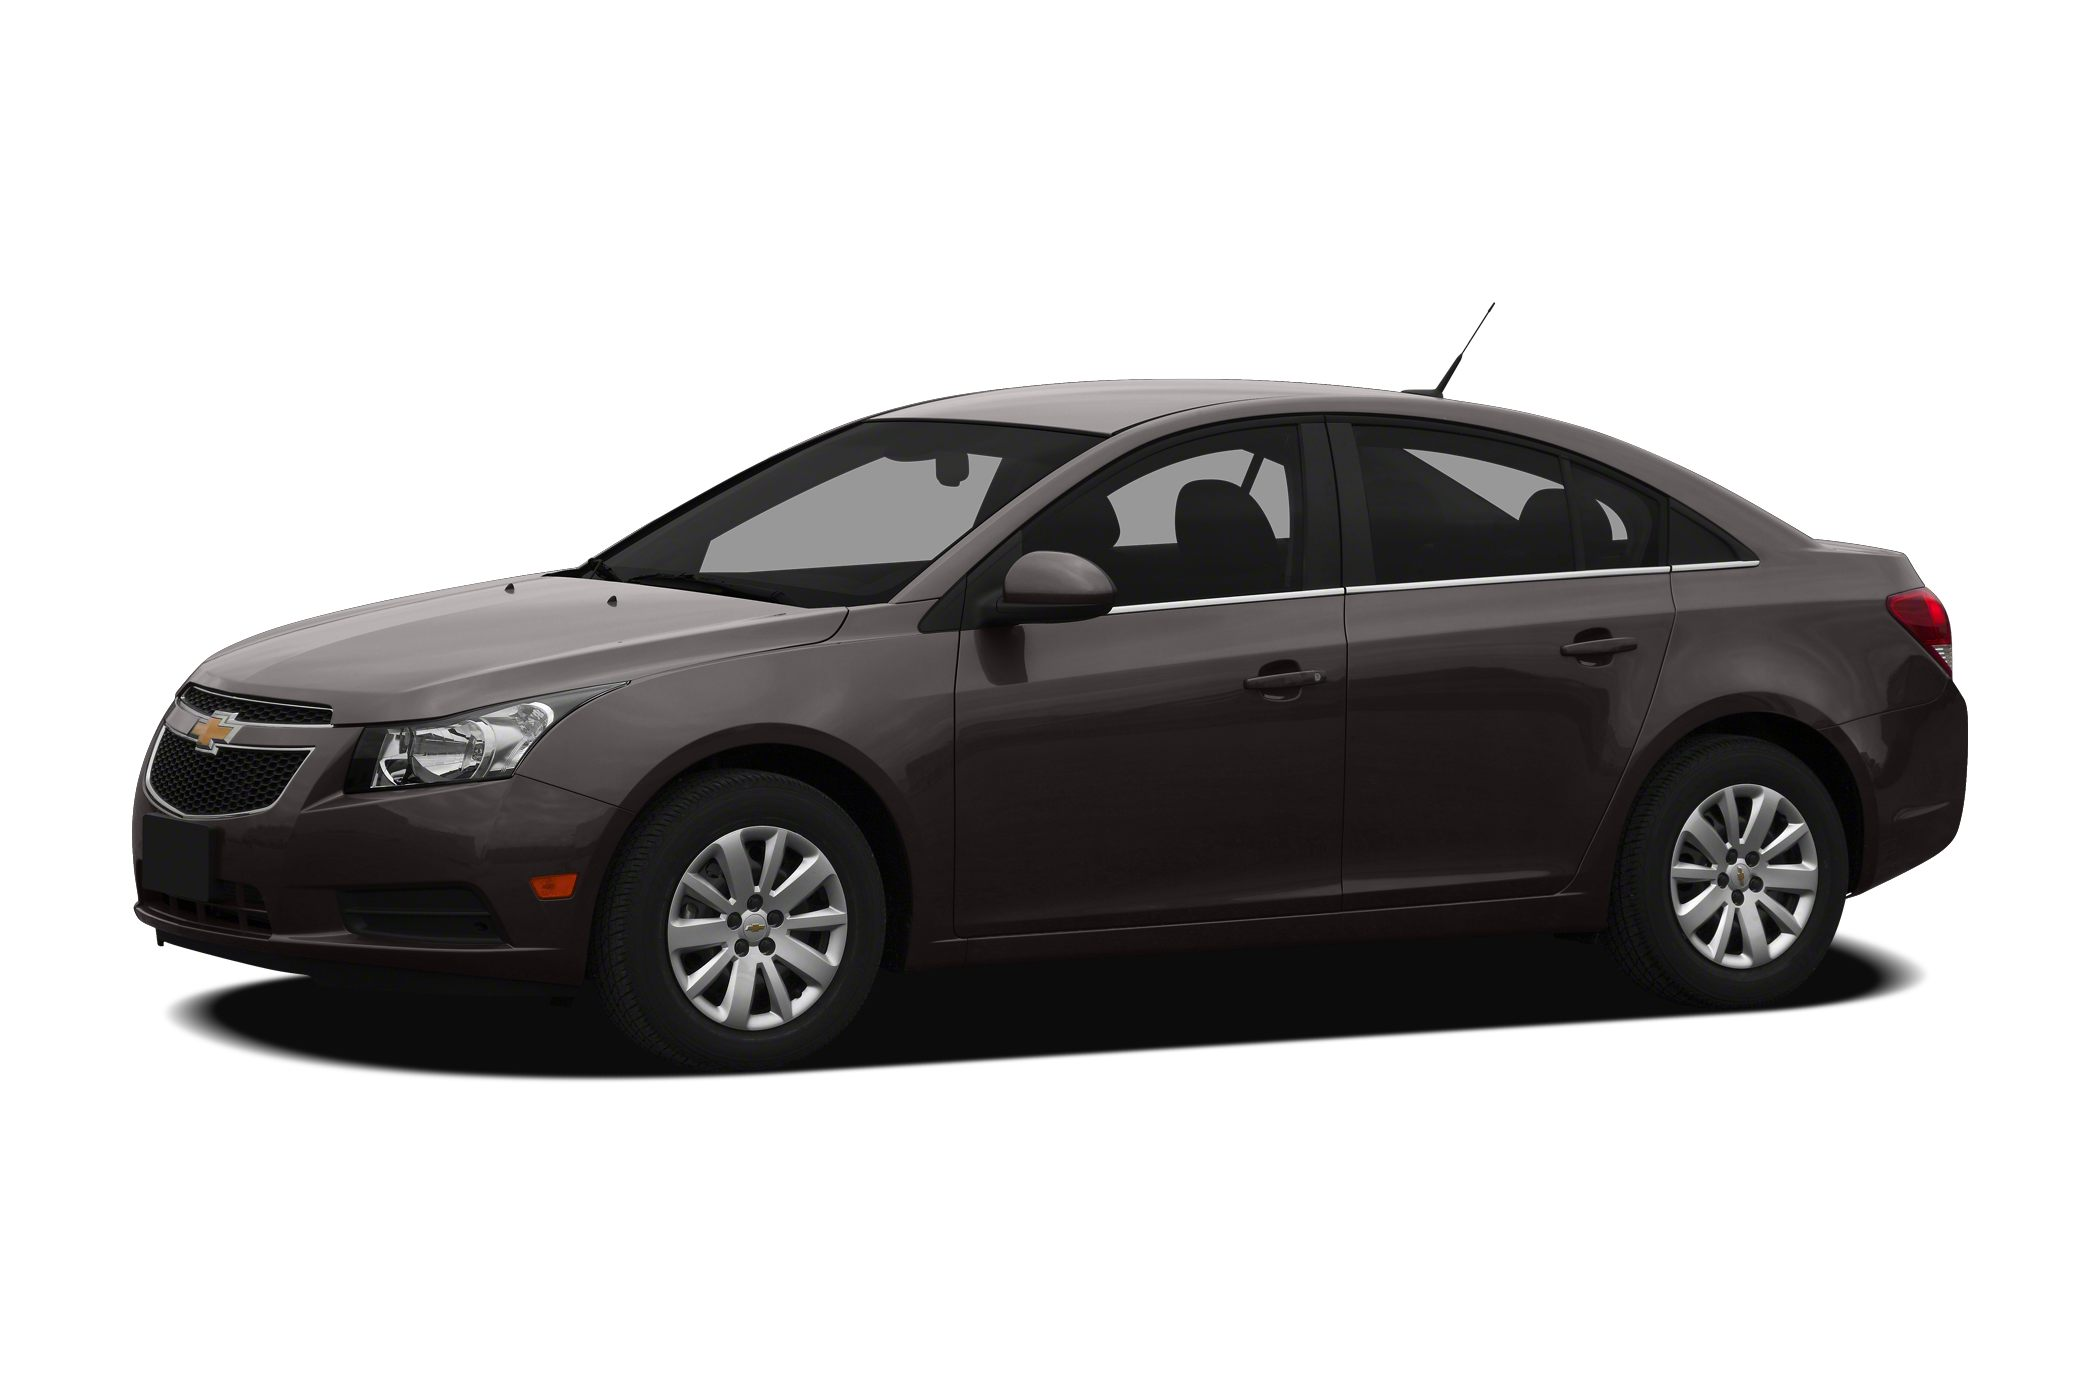 2012 Chevrolet Cruze LT Sedan for sale in Stroudsburg for $14,025 with 22,907 miles